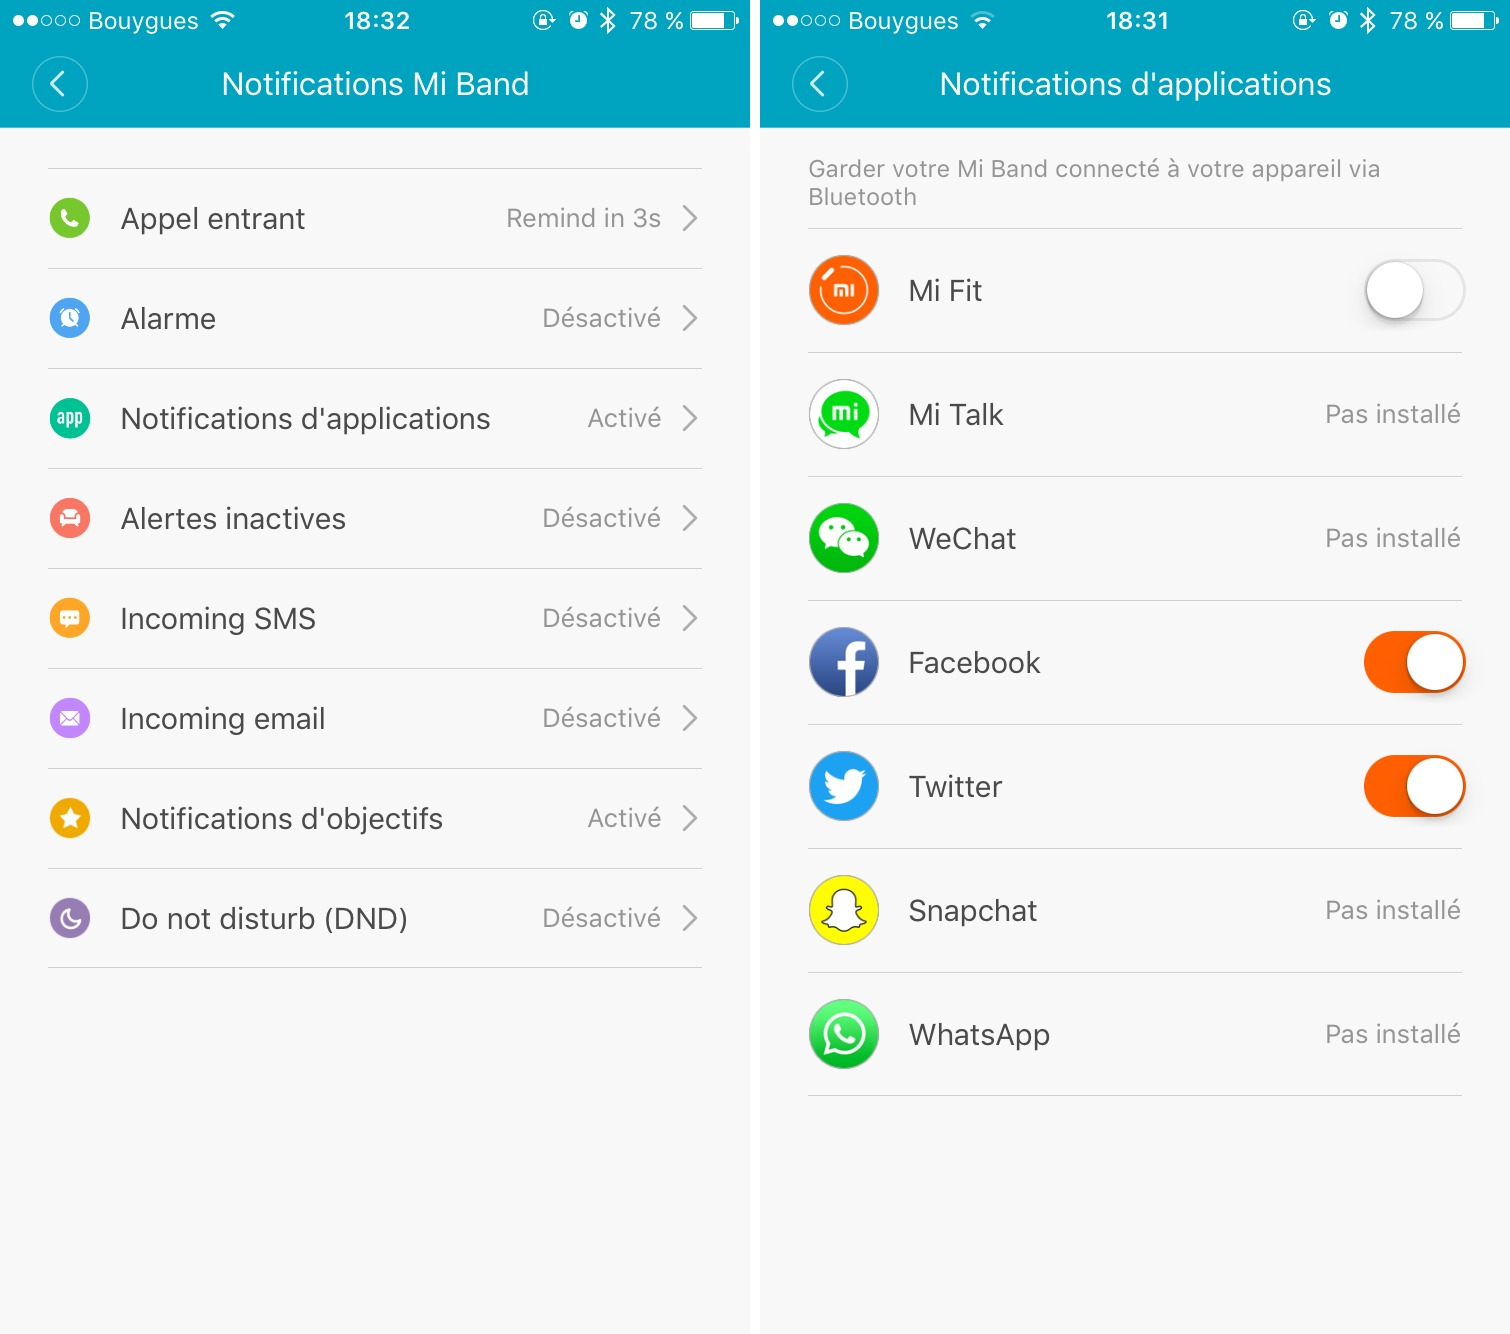 application-notifications-mi-fit-xiaomi-mi-band-2